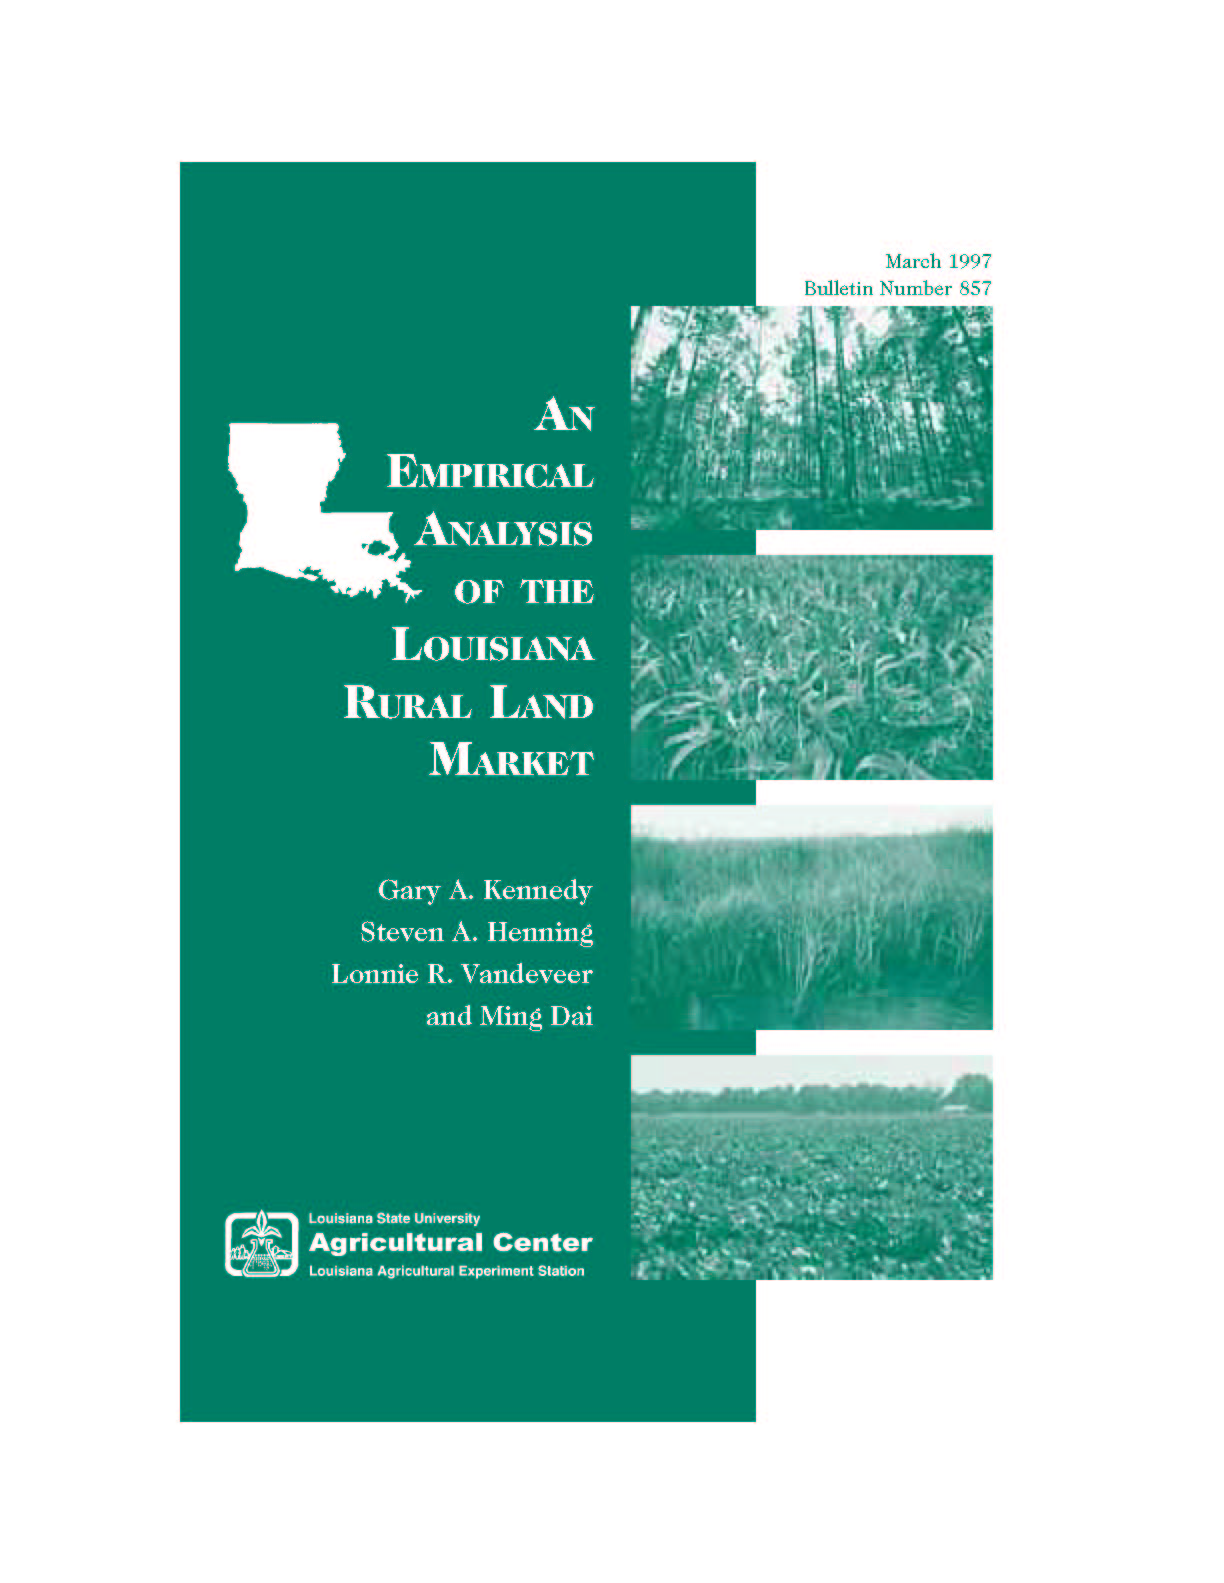 An Empirical Analysis of the Louisiana Rural Land Market (1997)